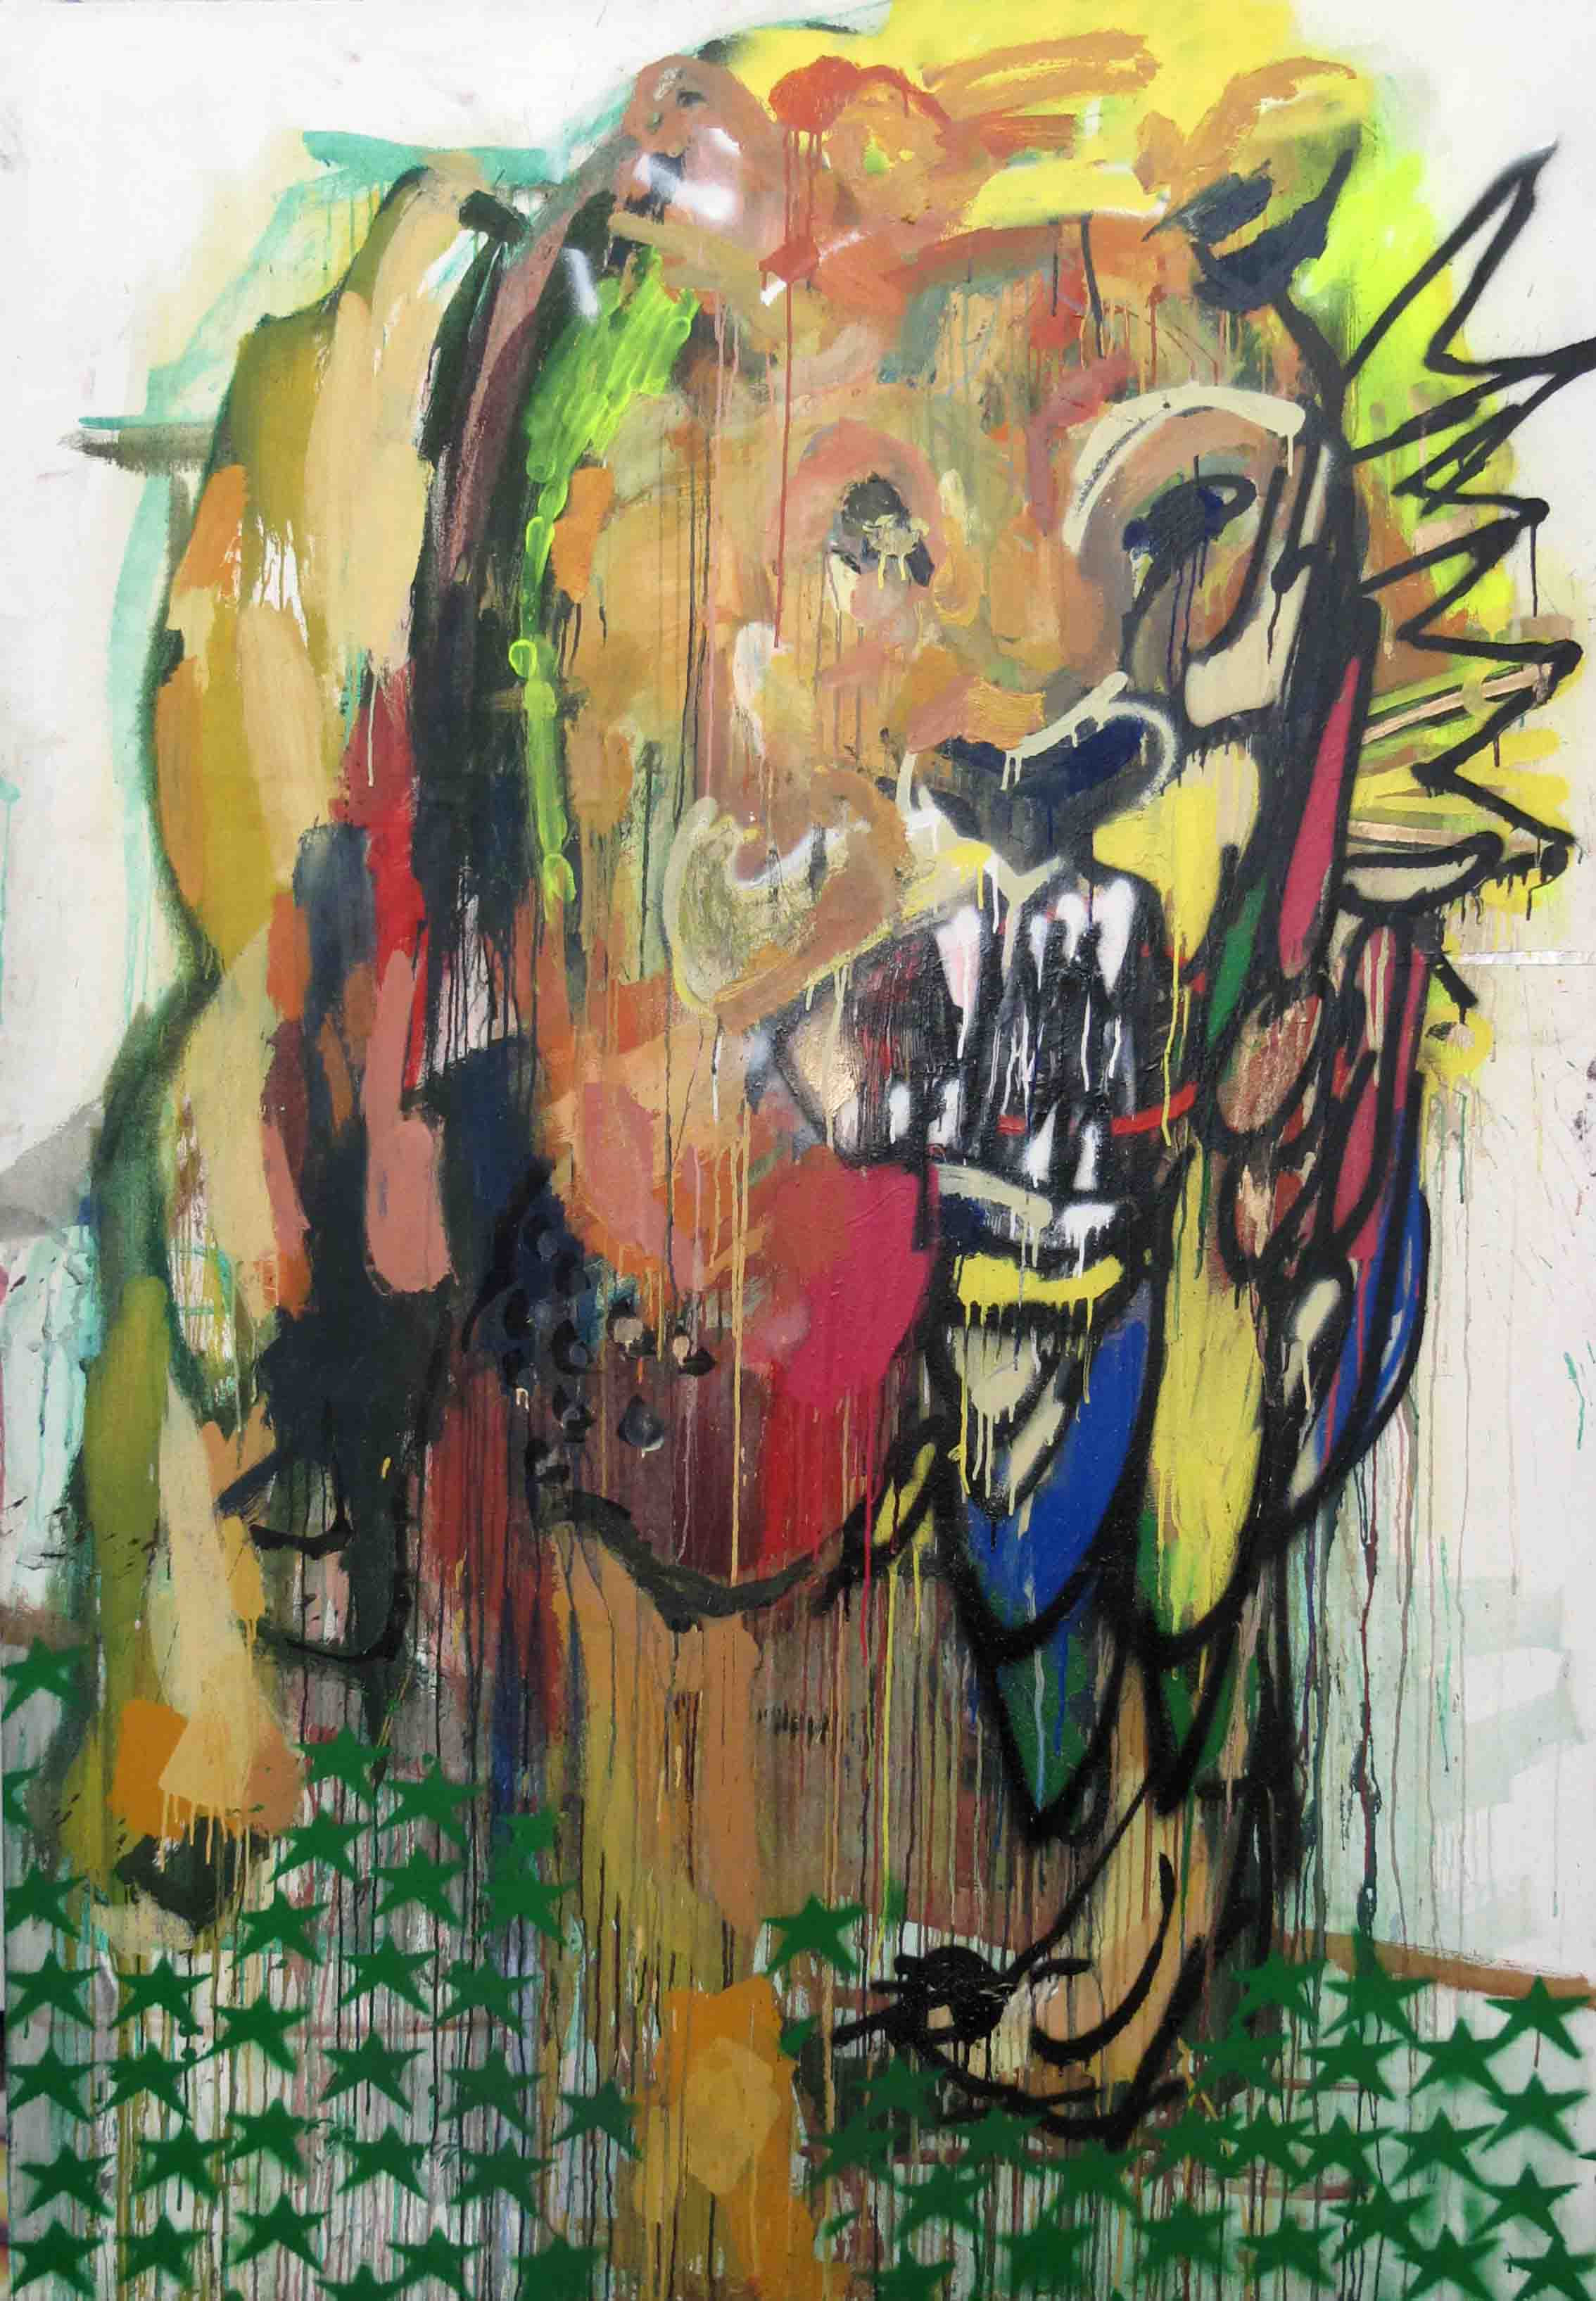 lion 200 x 140 x 2 cm water oils and spray on canvas